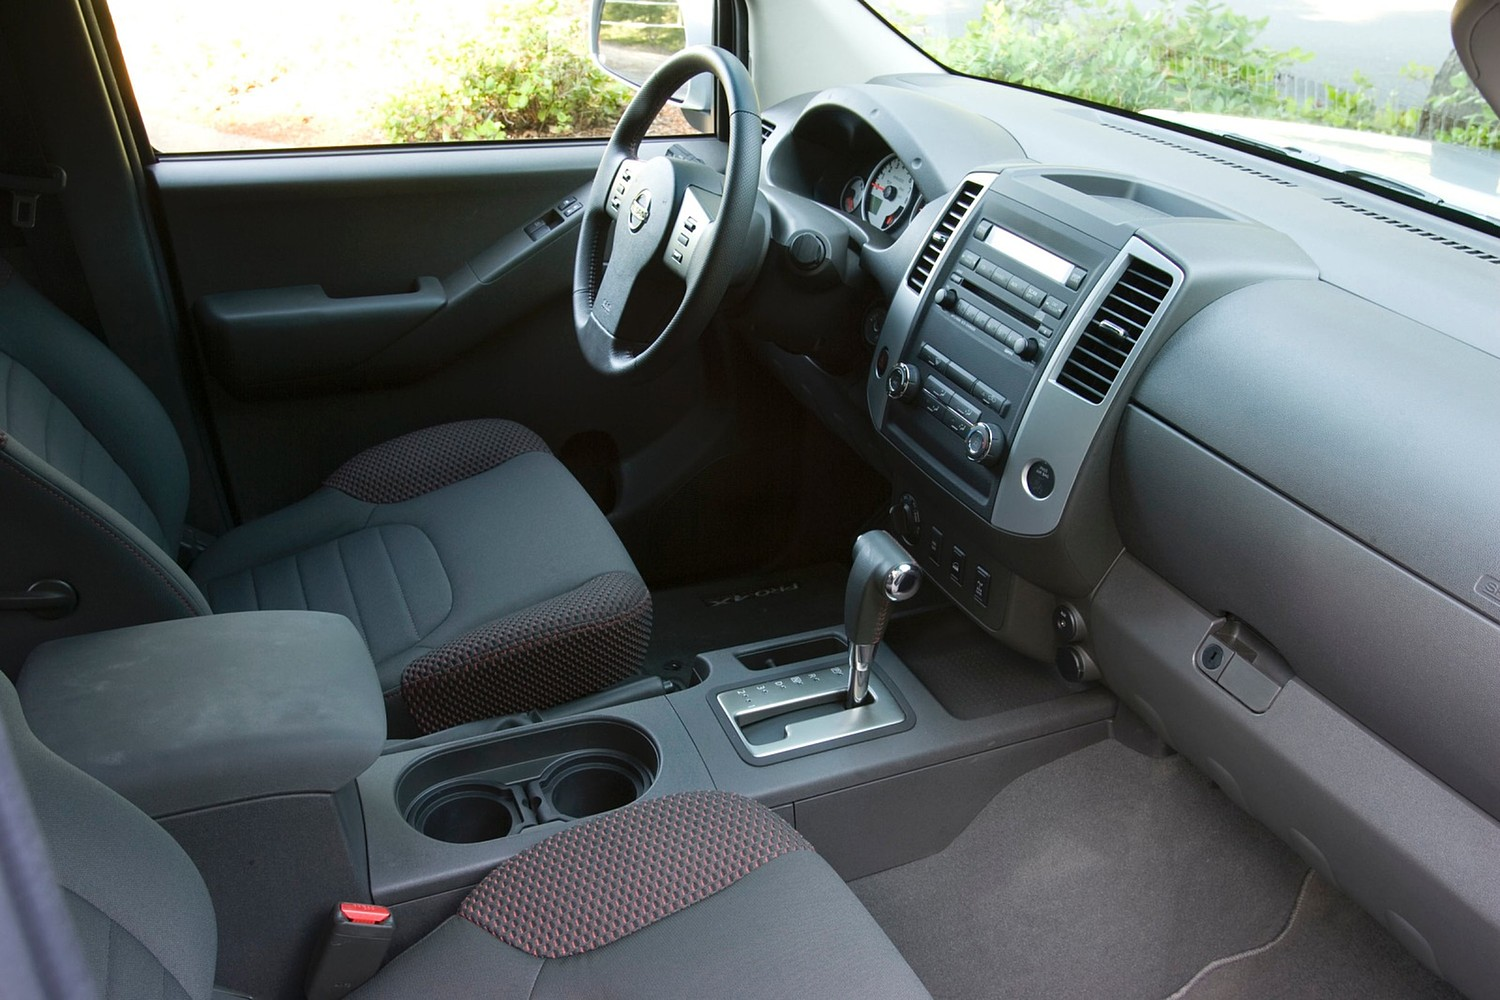 2016 Nissan Frontier PRO-4X Extended Cab Pickup Interior